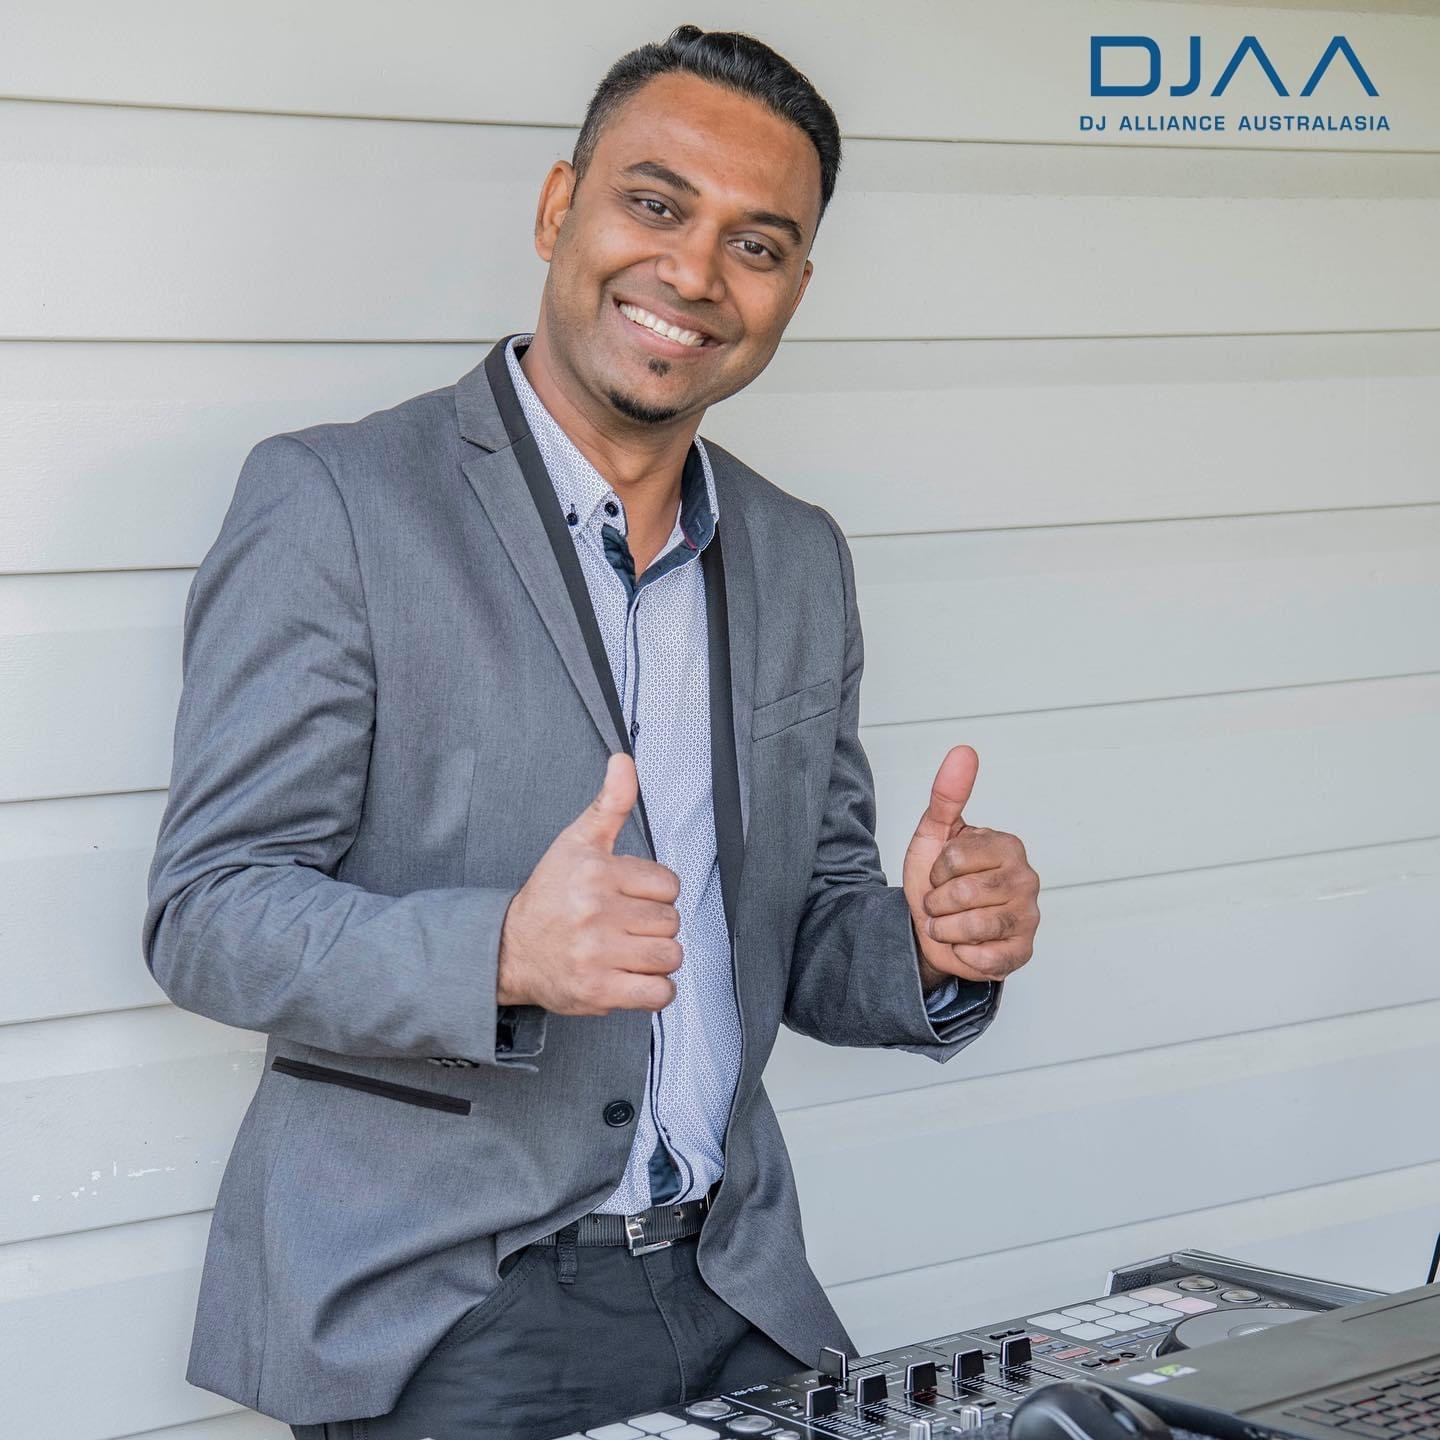 Brilliant Entertainment by Dj AmiTt, Professional Australian Wedding & Corporate Dj Services